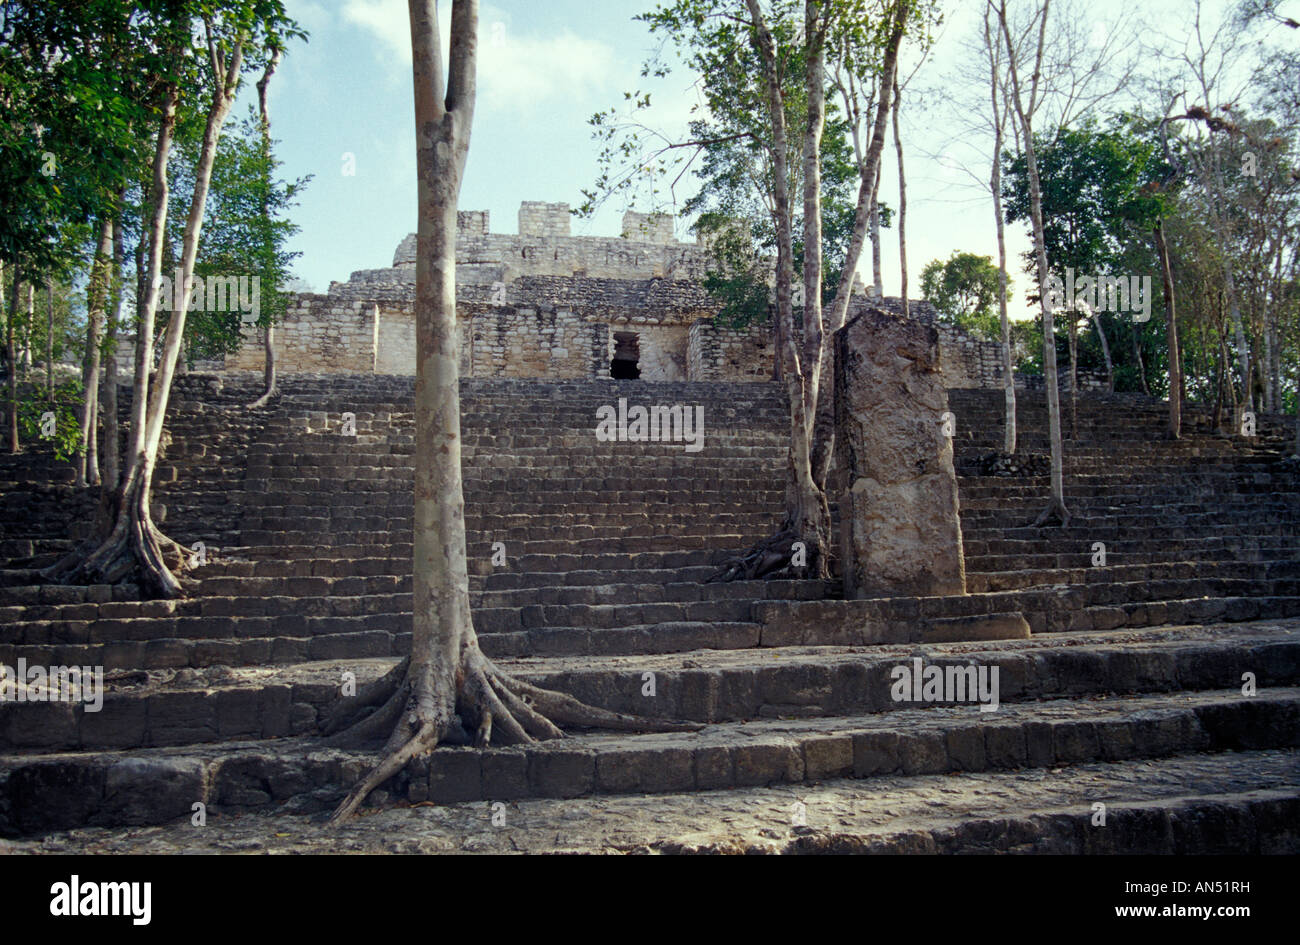 structure-viii-at-the-mayan-ruins-of-cal